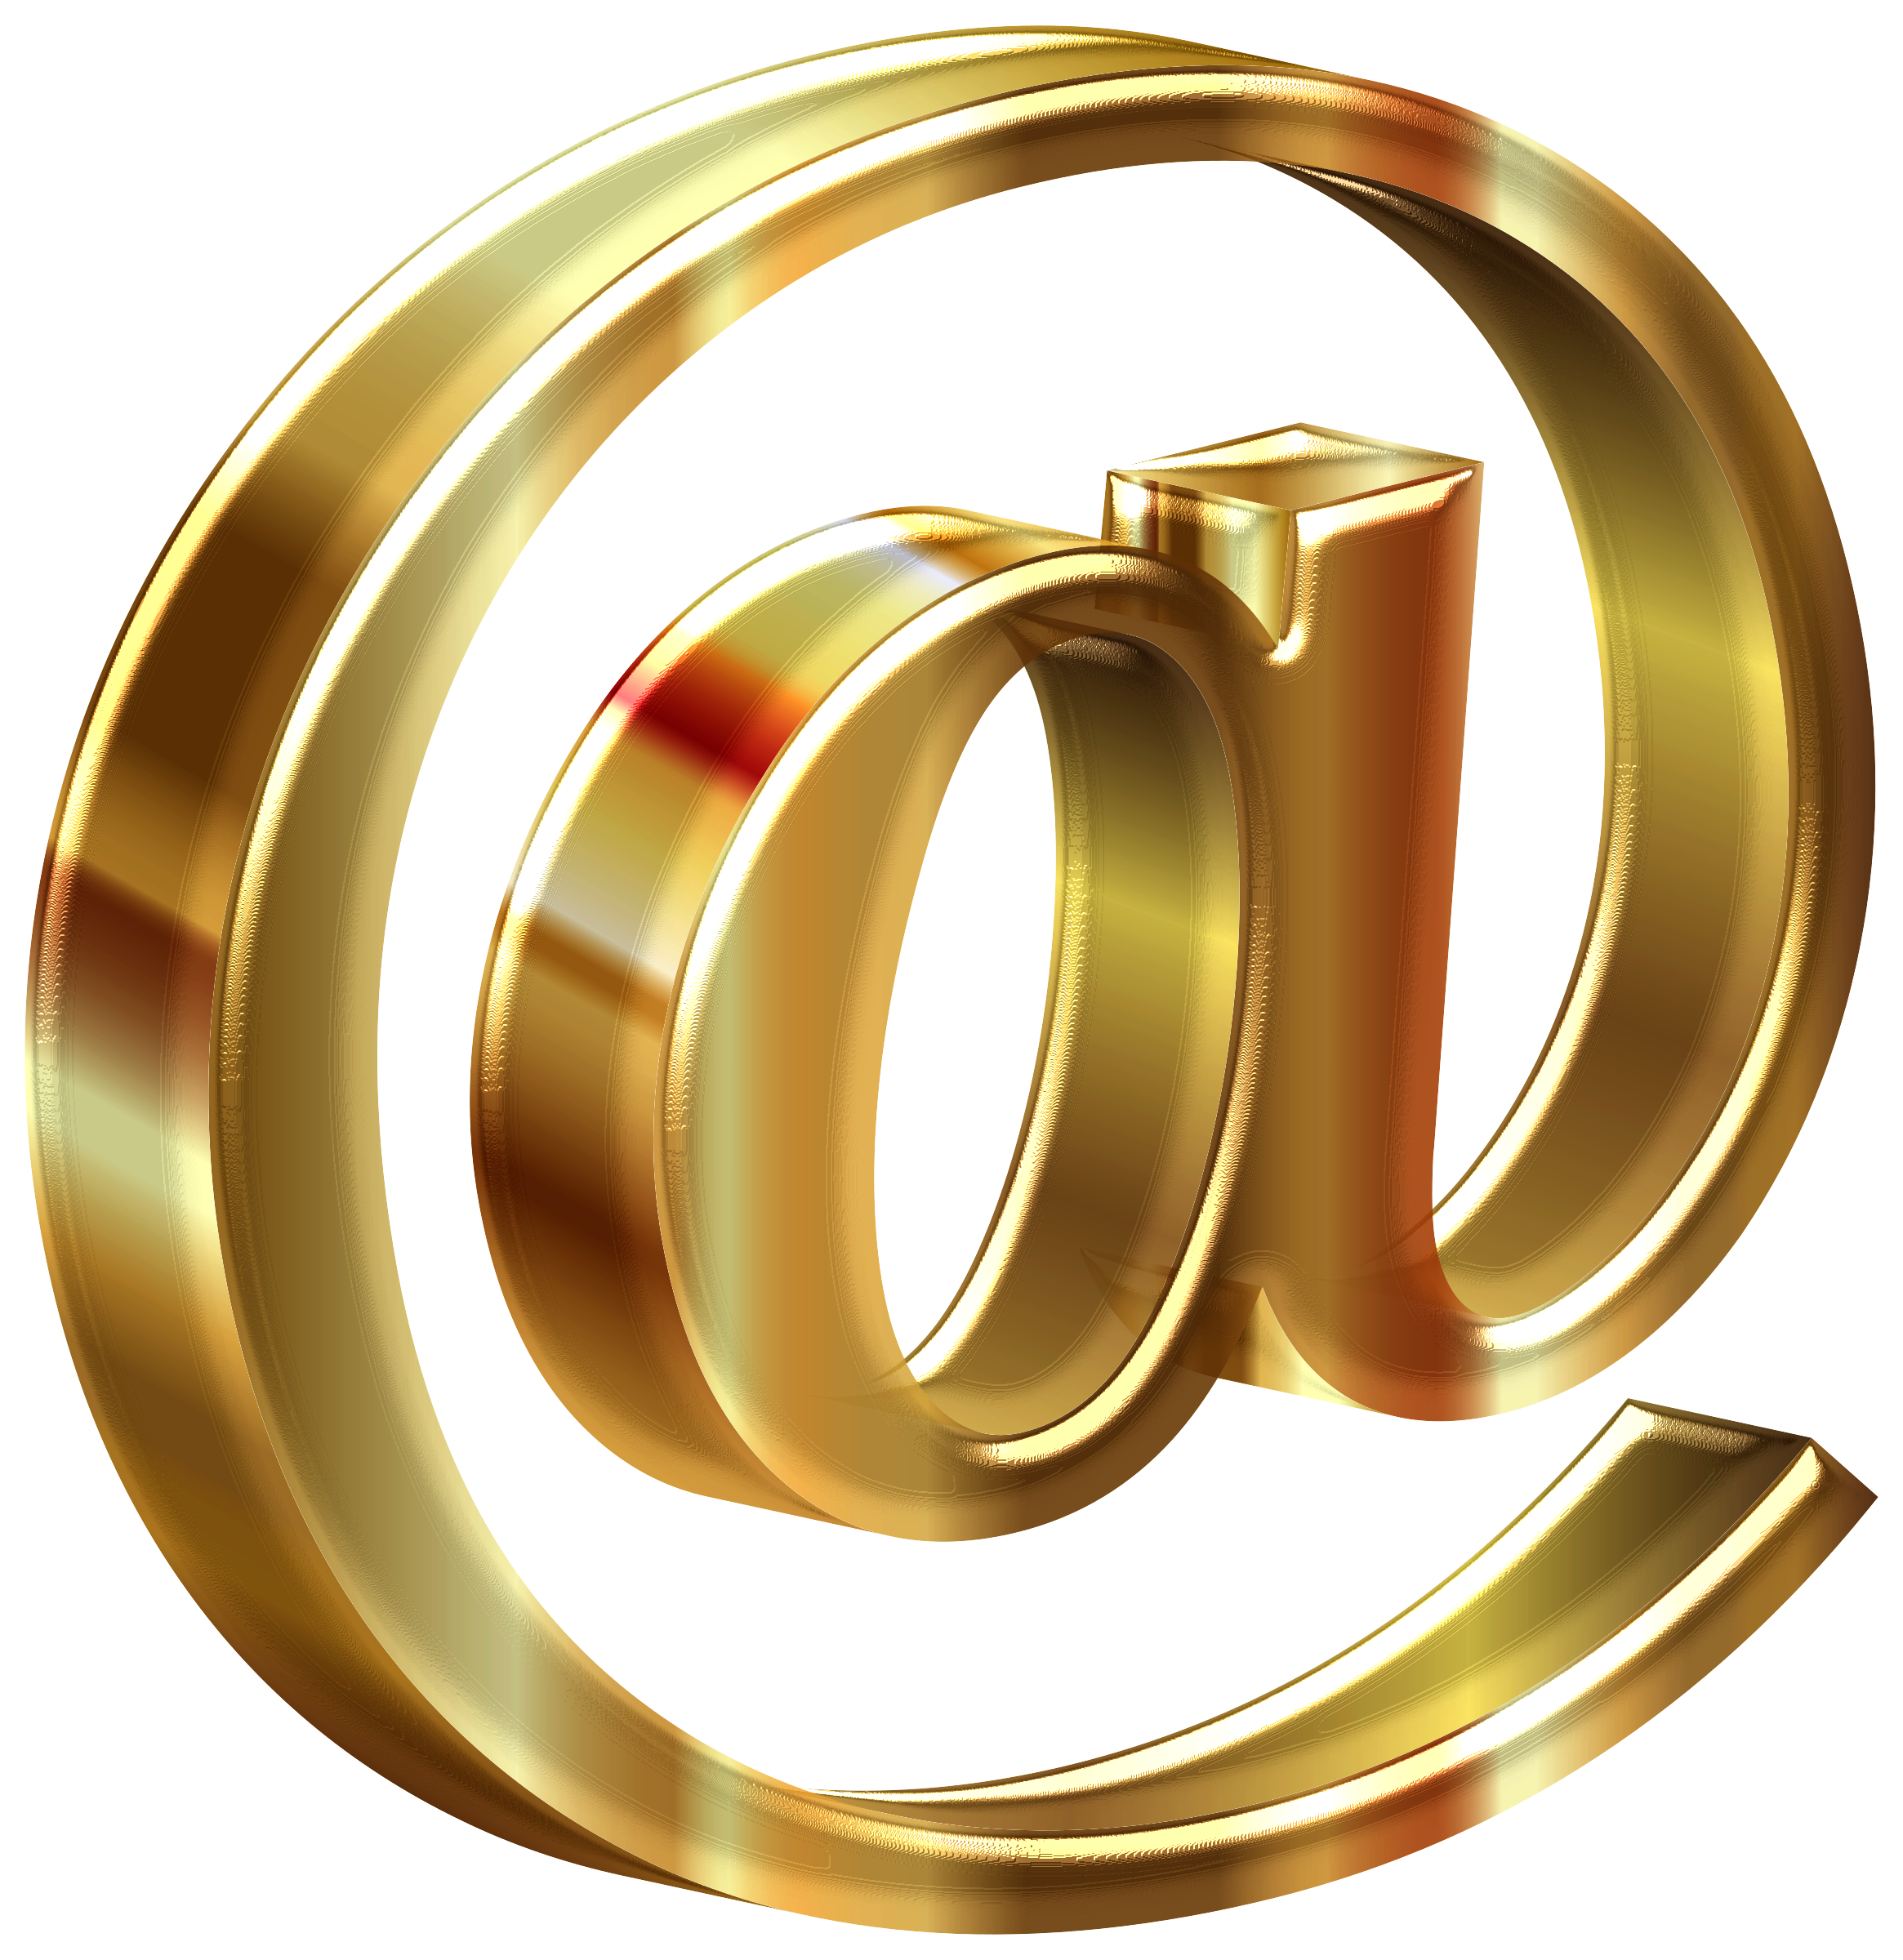 6 clipart gold number. D shiny at sign